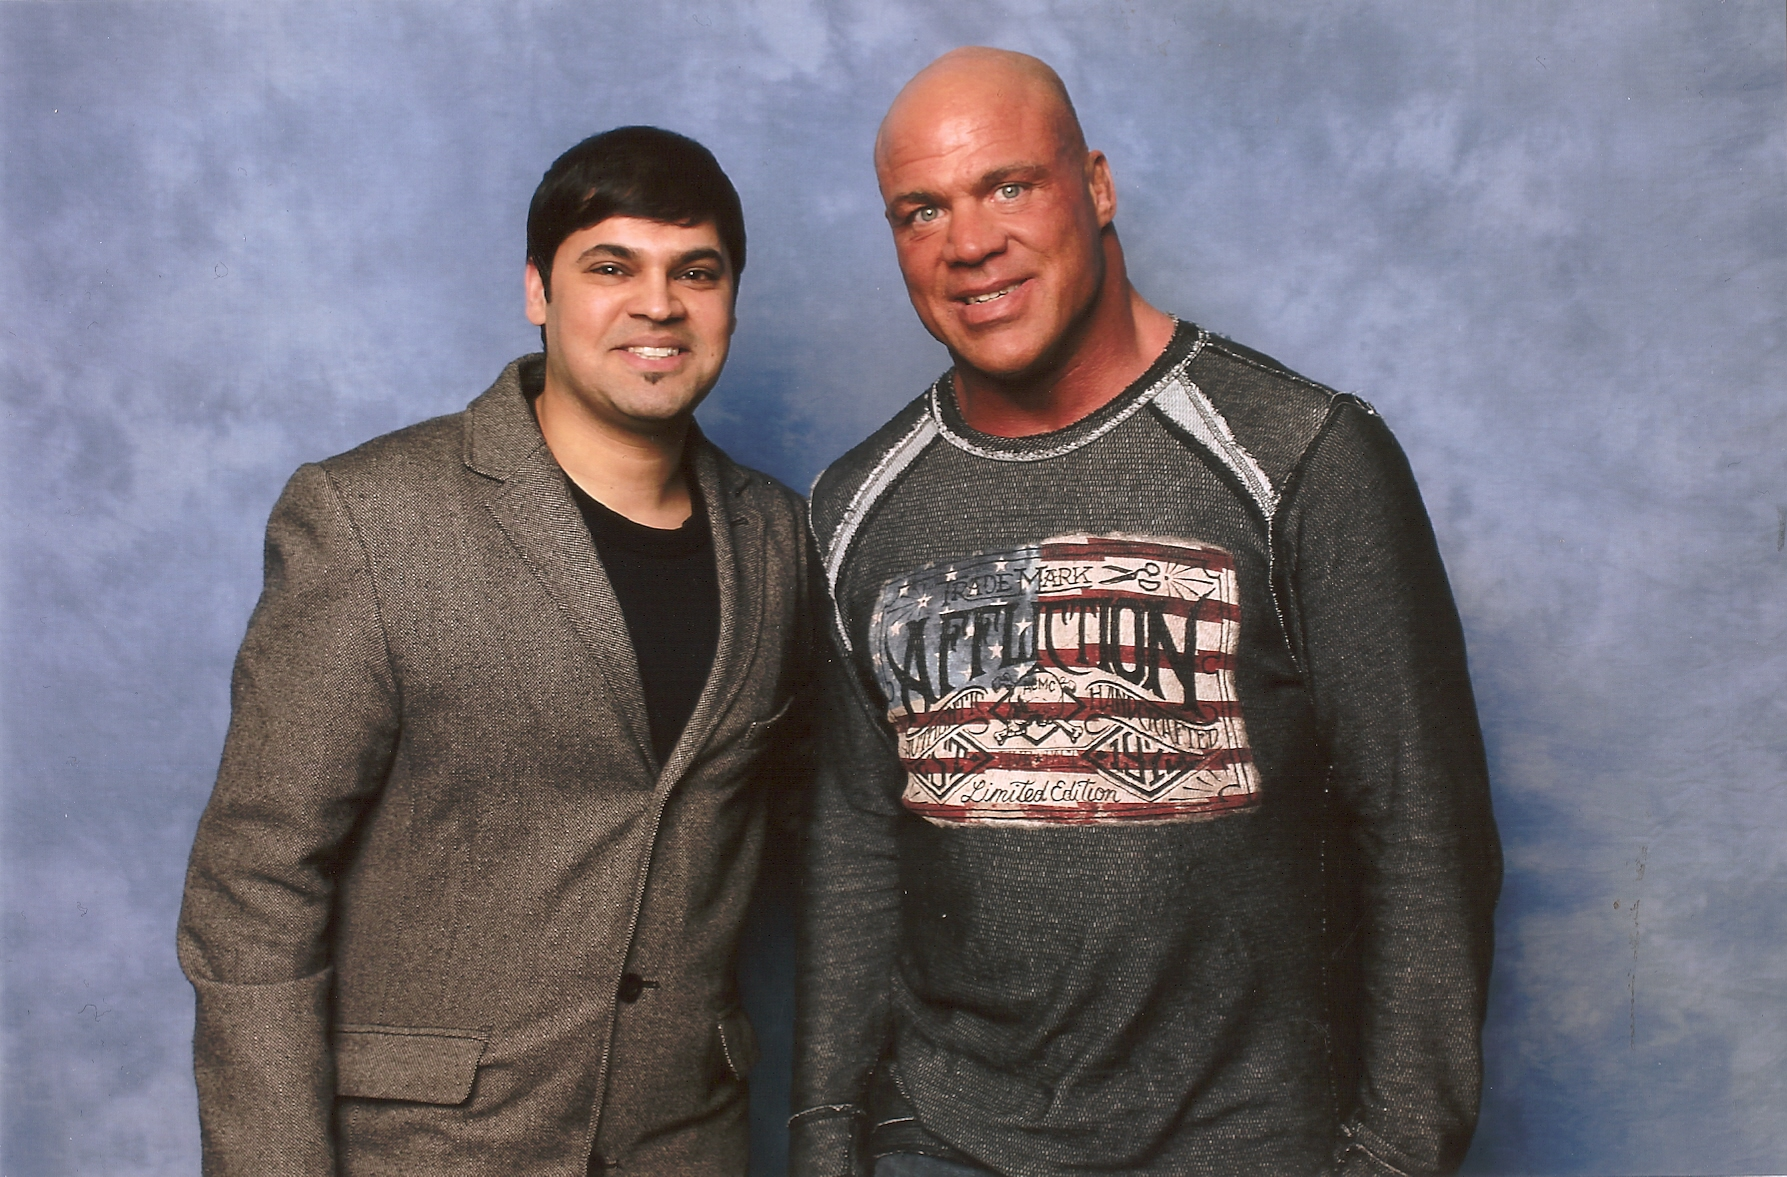 With Wrestler Kurt Angle